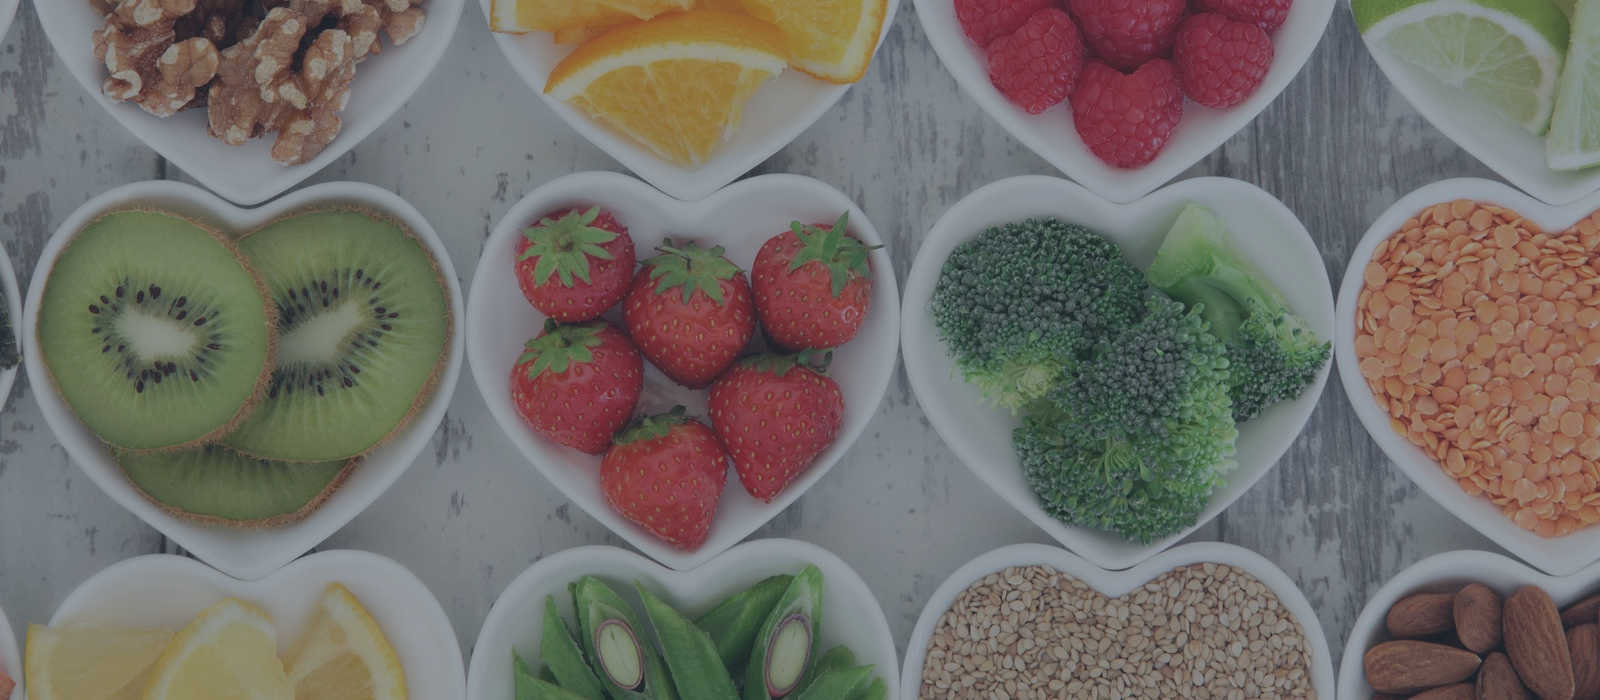 5 Ways to Eat Your Way to Great Skin